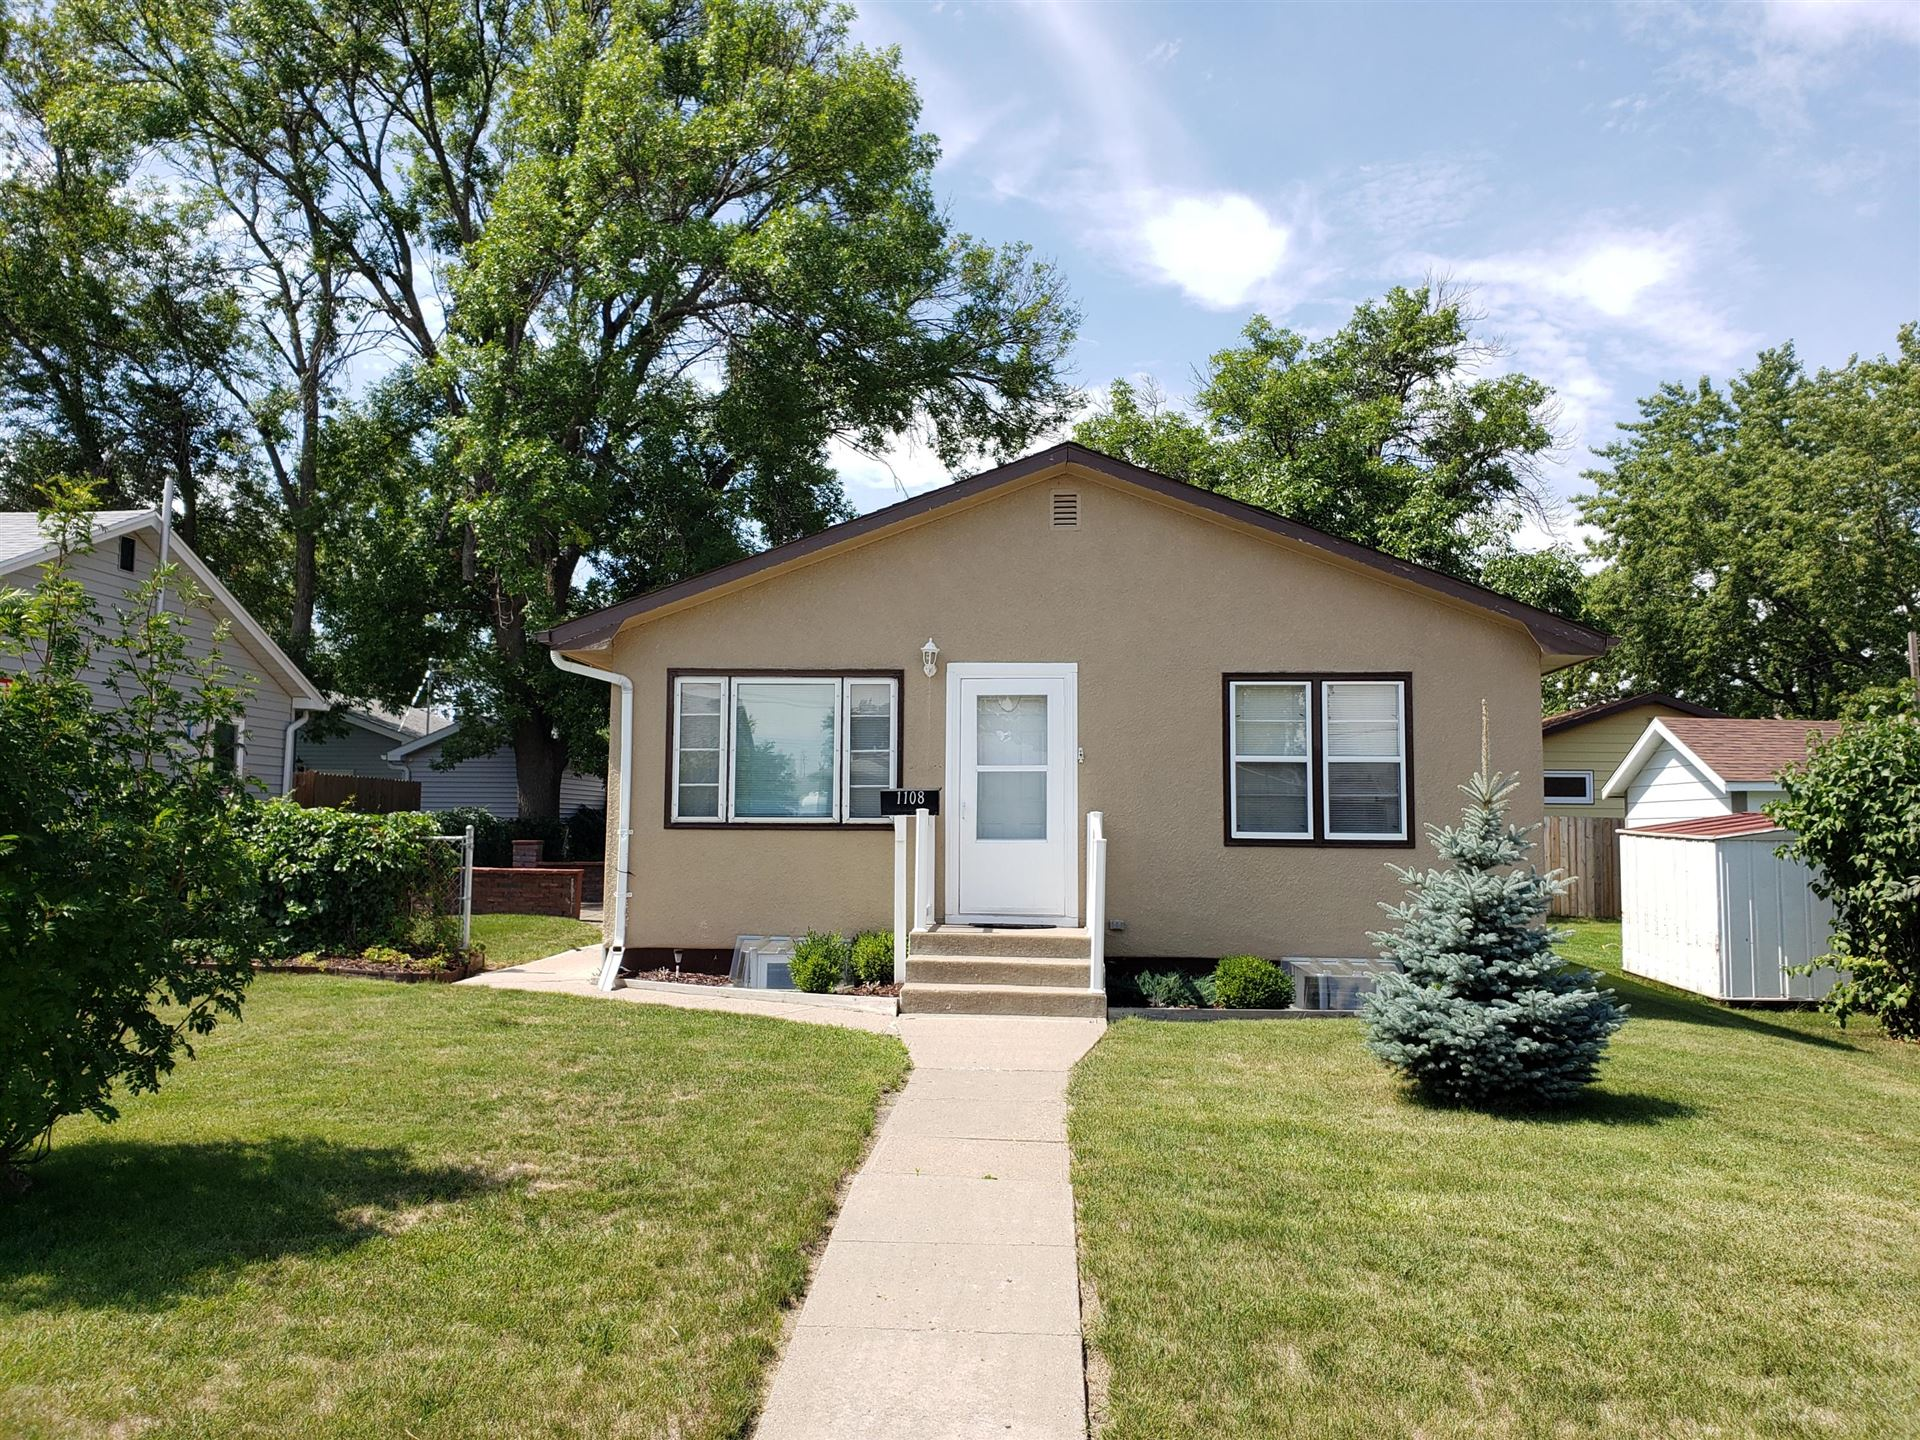 Photo for 1108 10th Avenue SE, Jamestown, ND 58401 (MLS # 20-462)